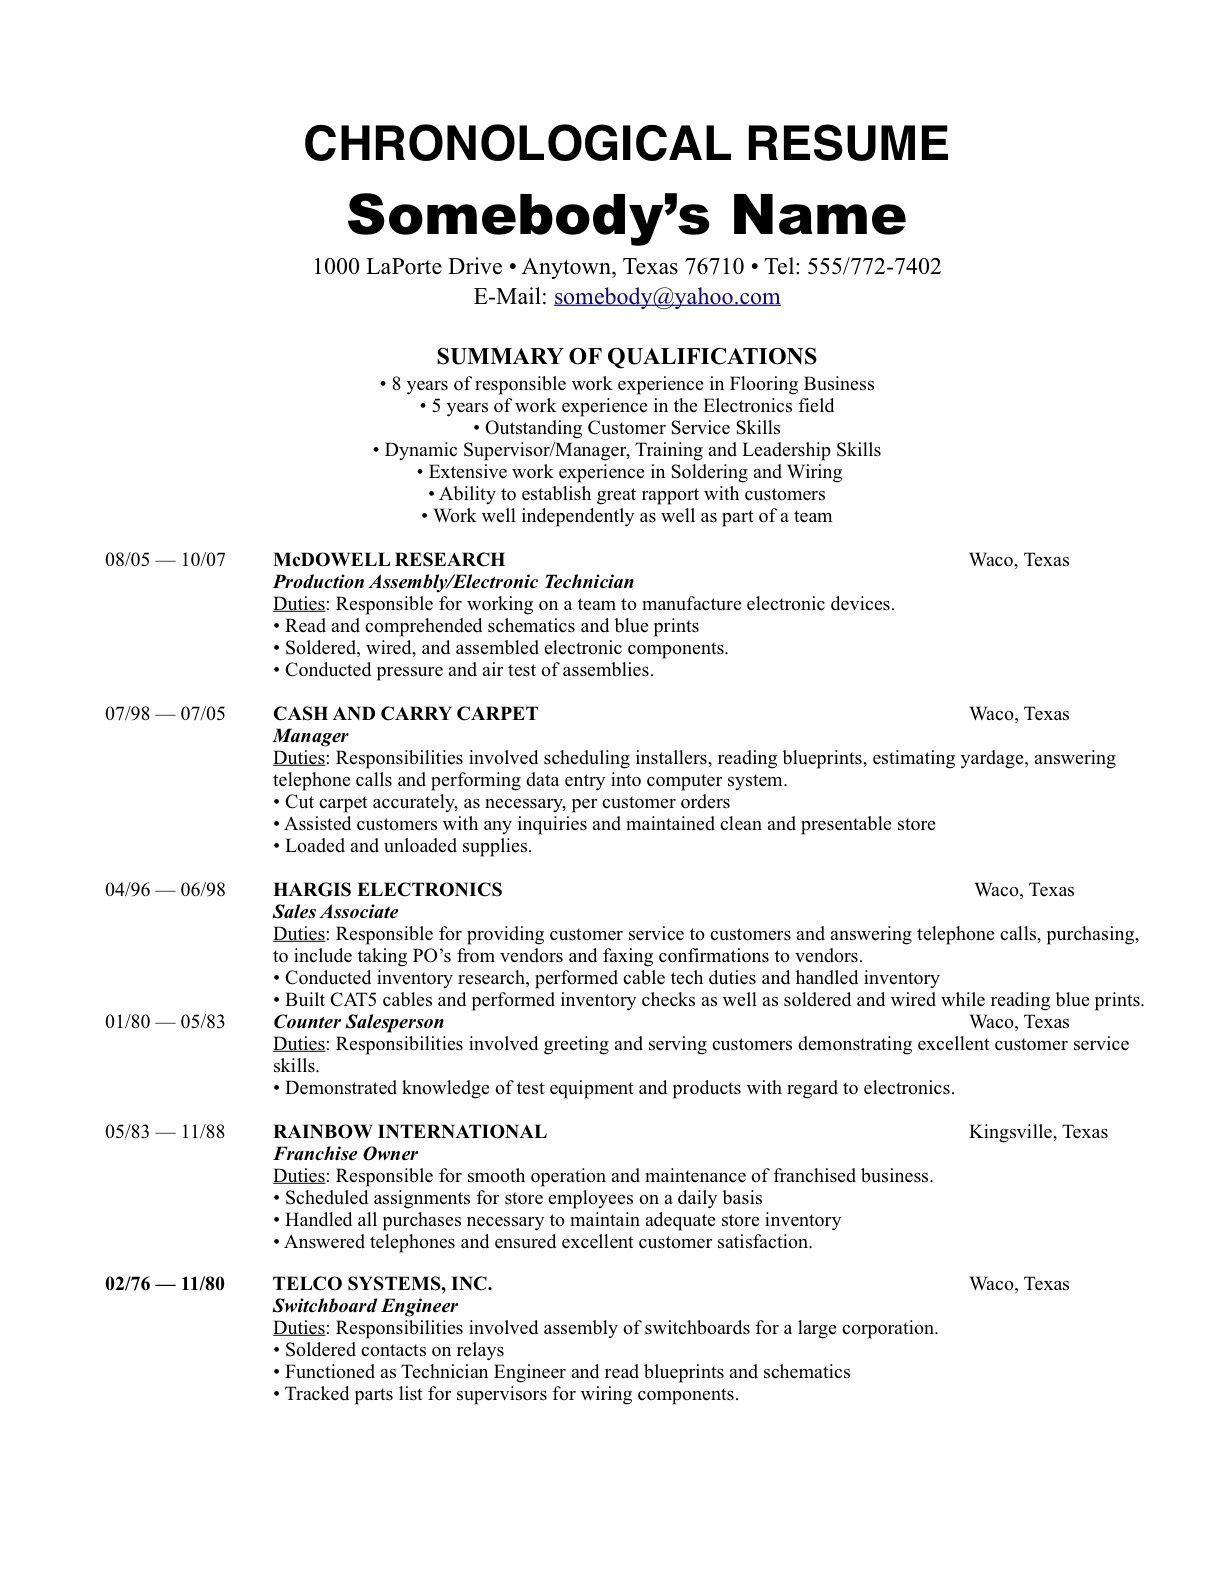 Resume Format Reverse Chronological Chronological resume